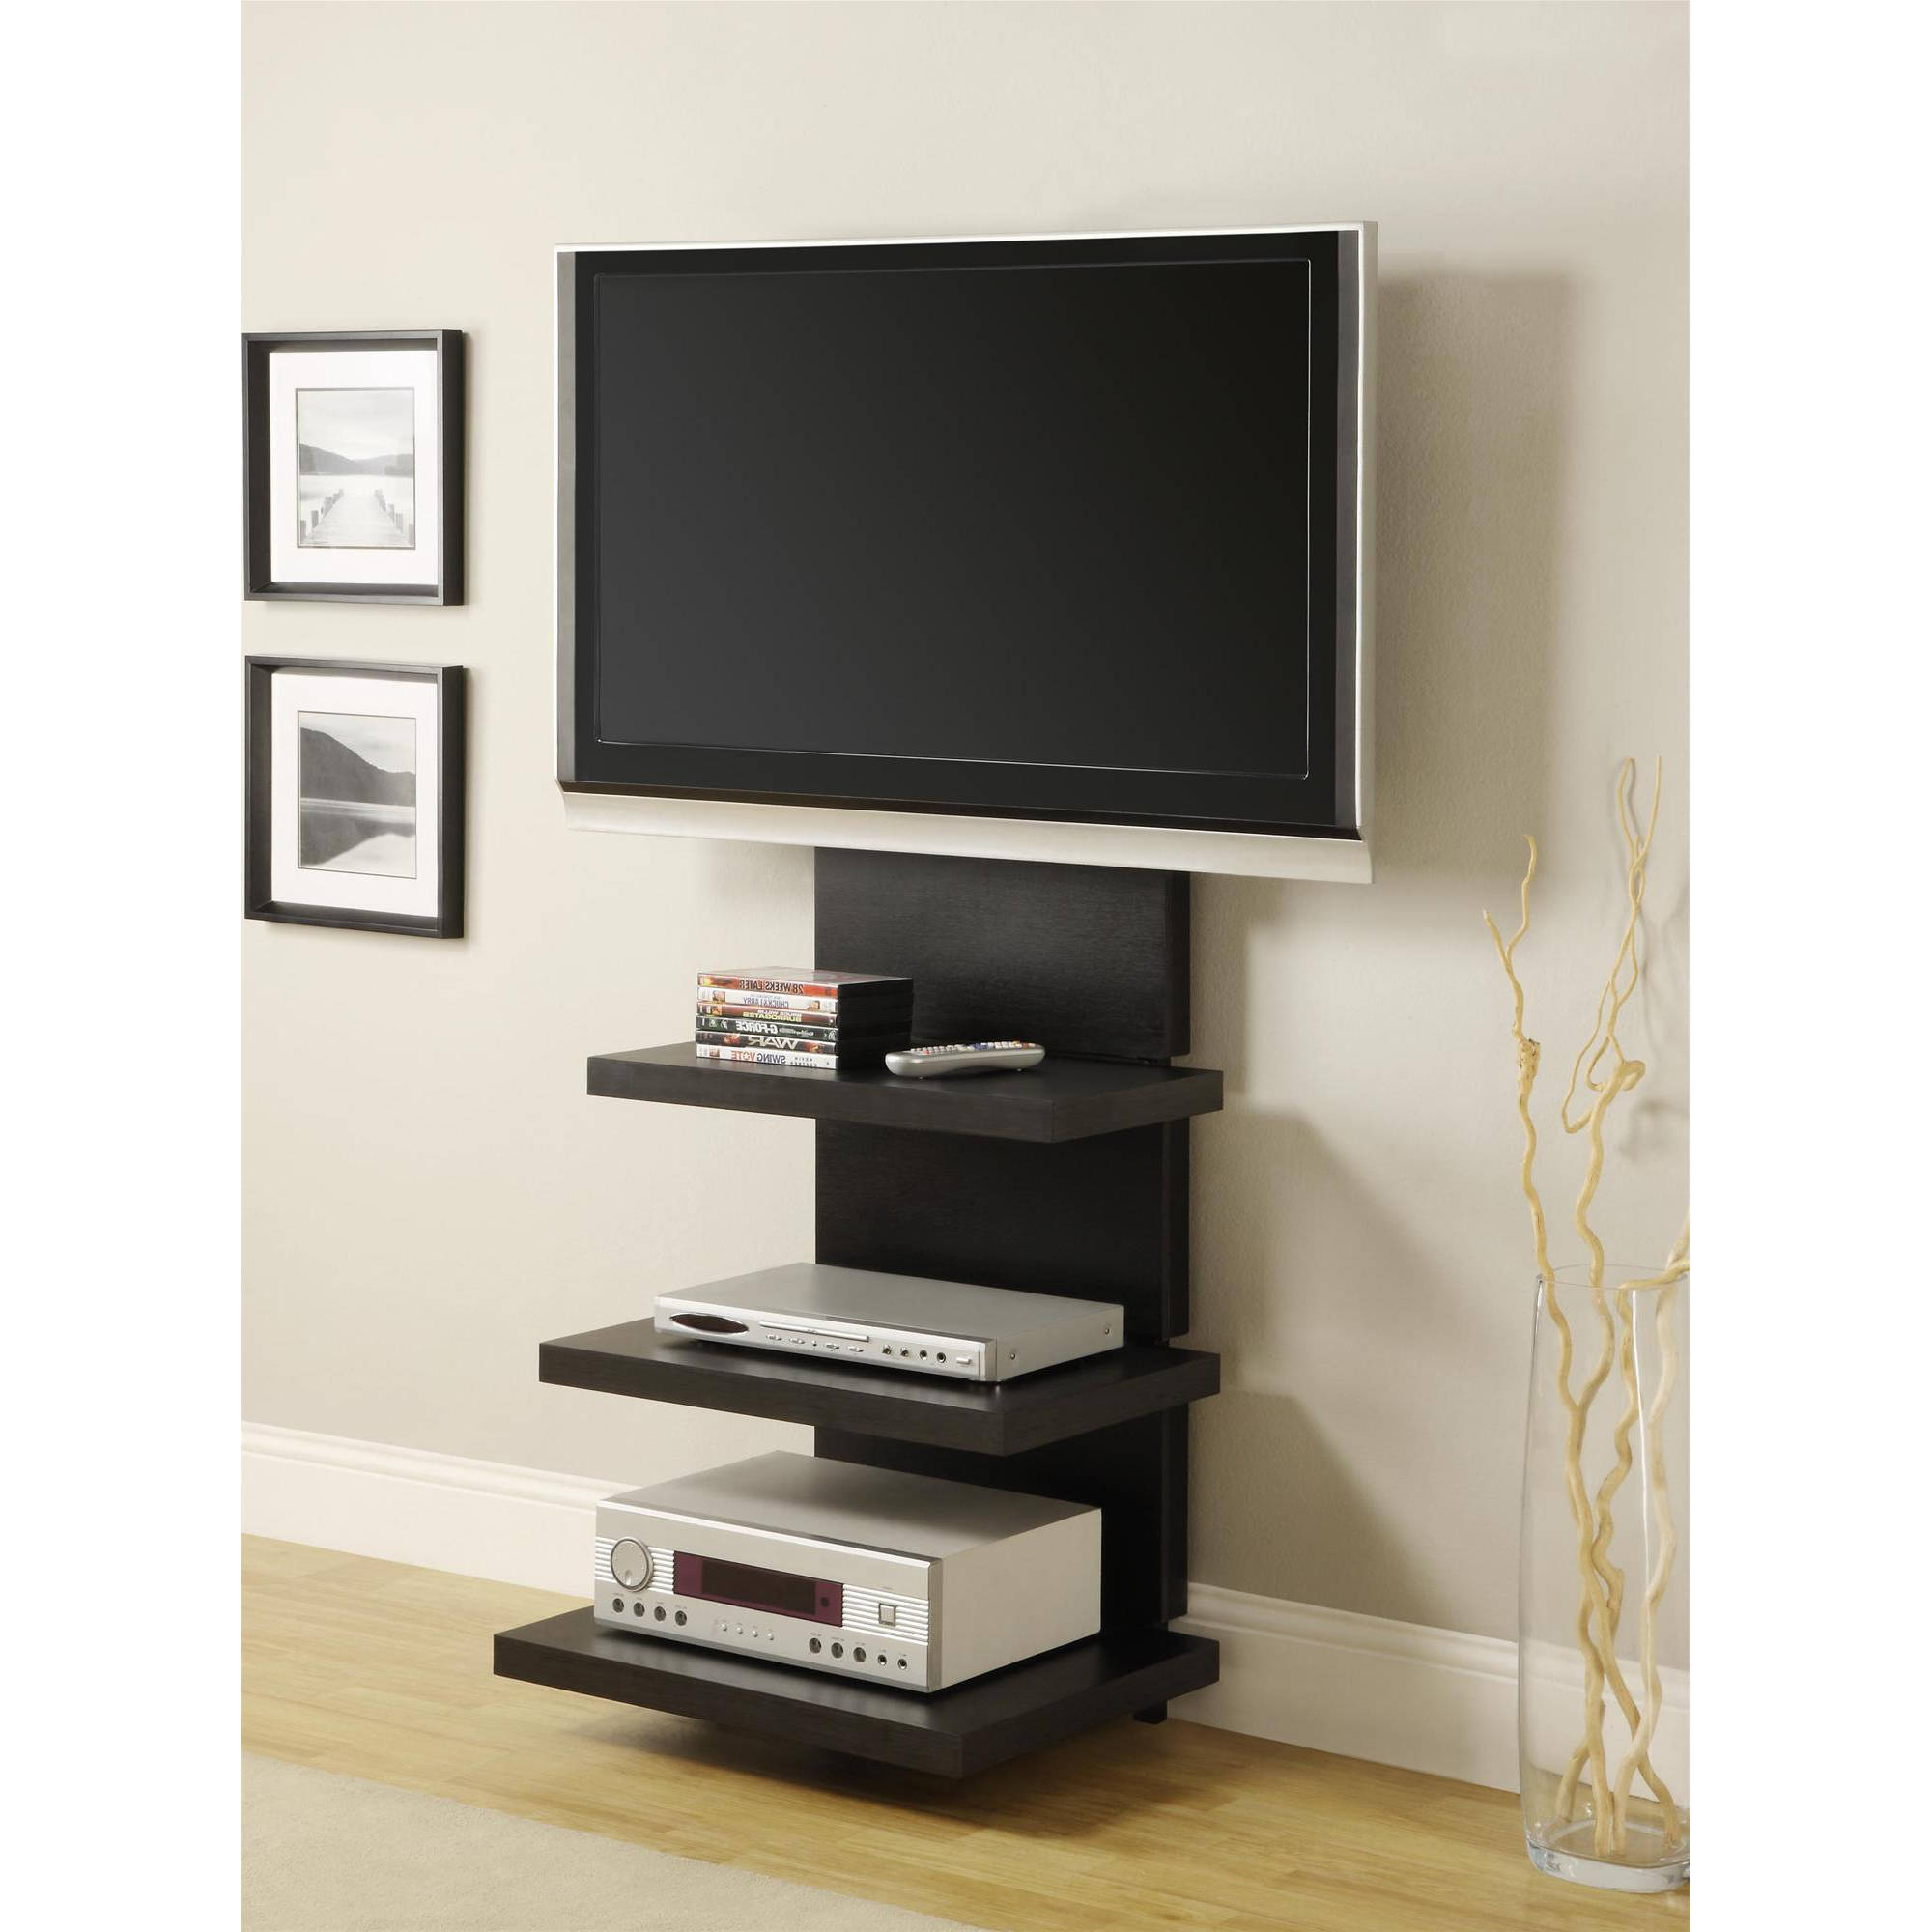 Ameriwood Home Elevation Altramount Tv Stand For Tvs Up To Throughout Modern Floor Tv Stands With Swivel Metal Mount (View 9 of 20)